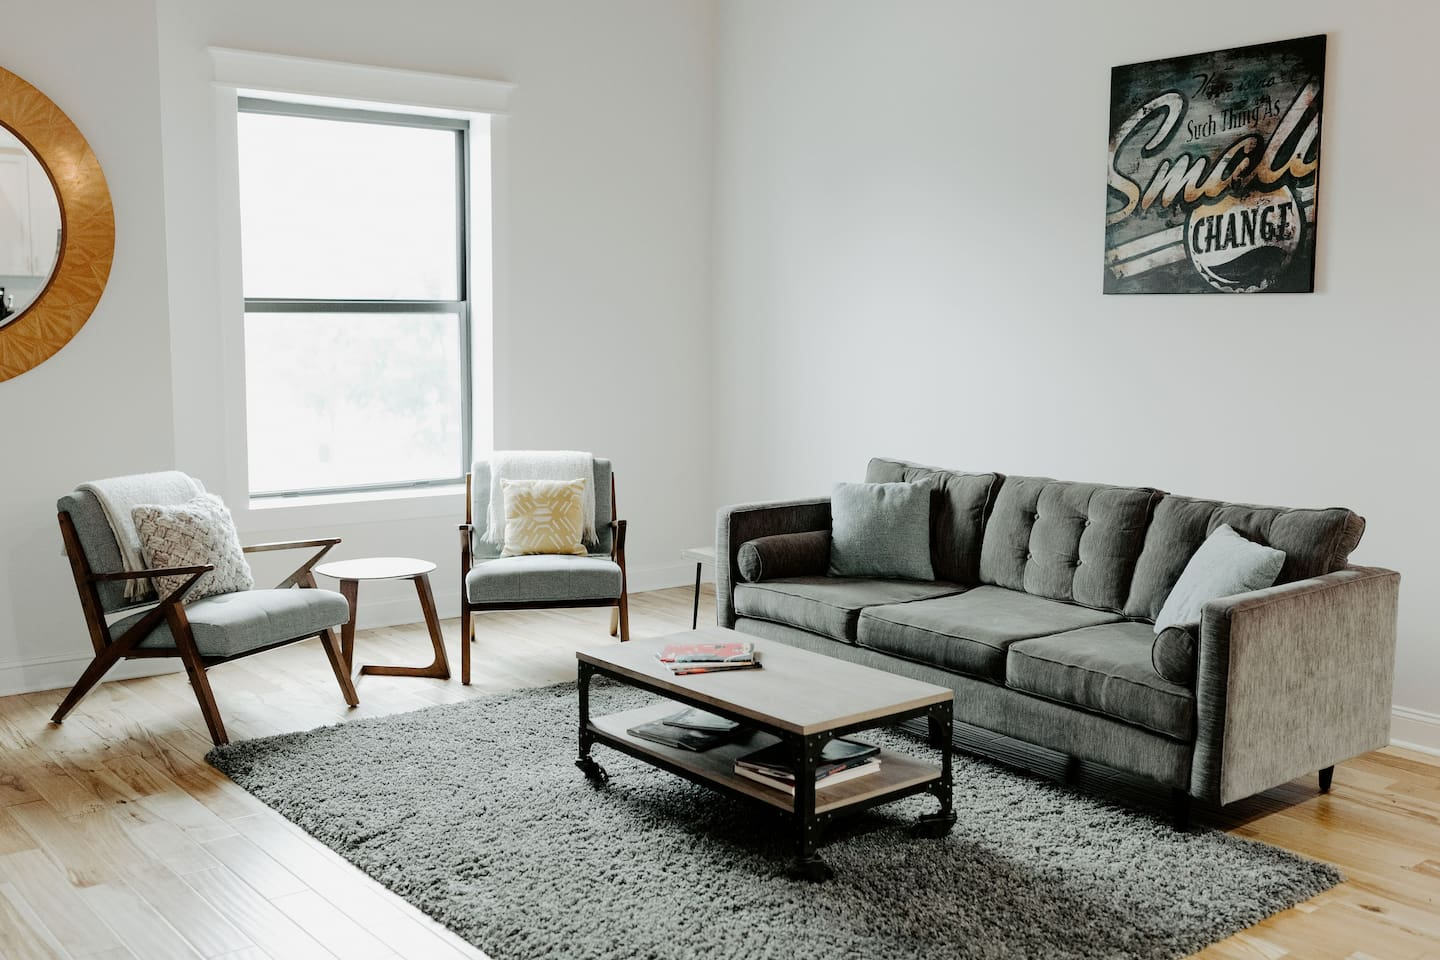 Bright and welcoming living room with large windows and a view of the city and Lucas Oil Stadium